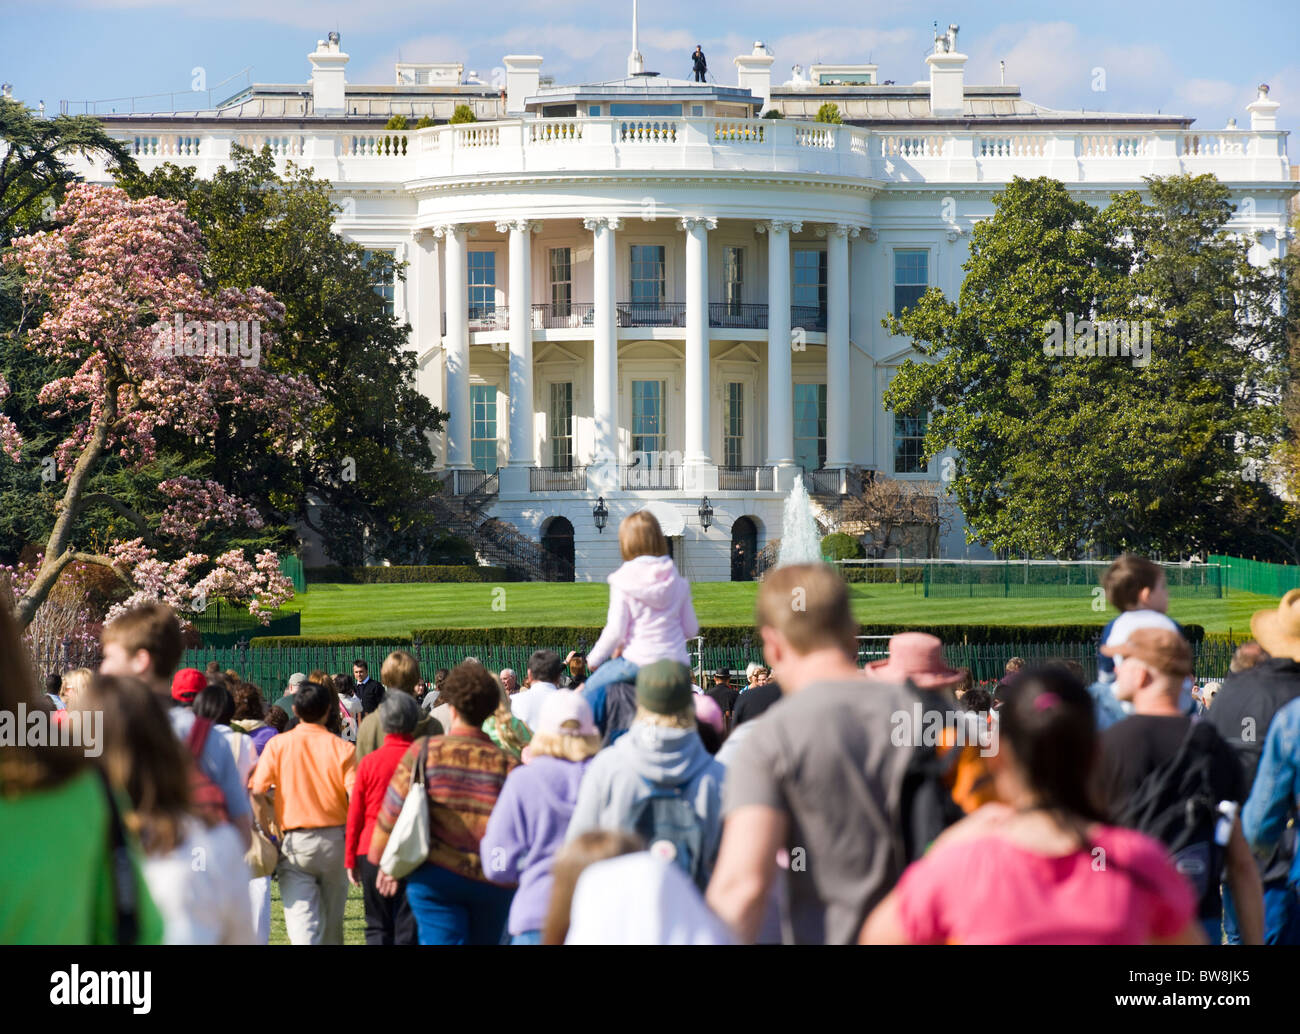 Crowds of tourists looking at the south side of The White House from the Ellipse in spring. Washington DC D.C. USA - Stock Image